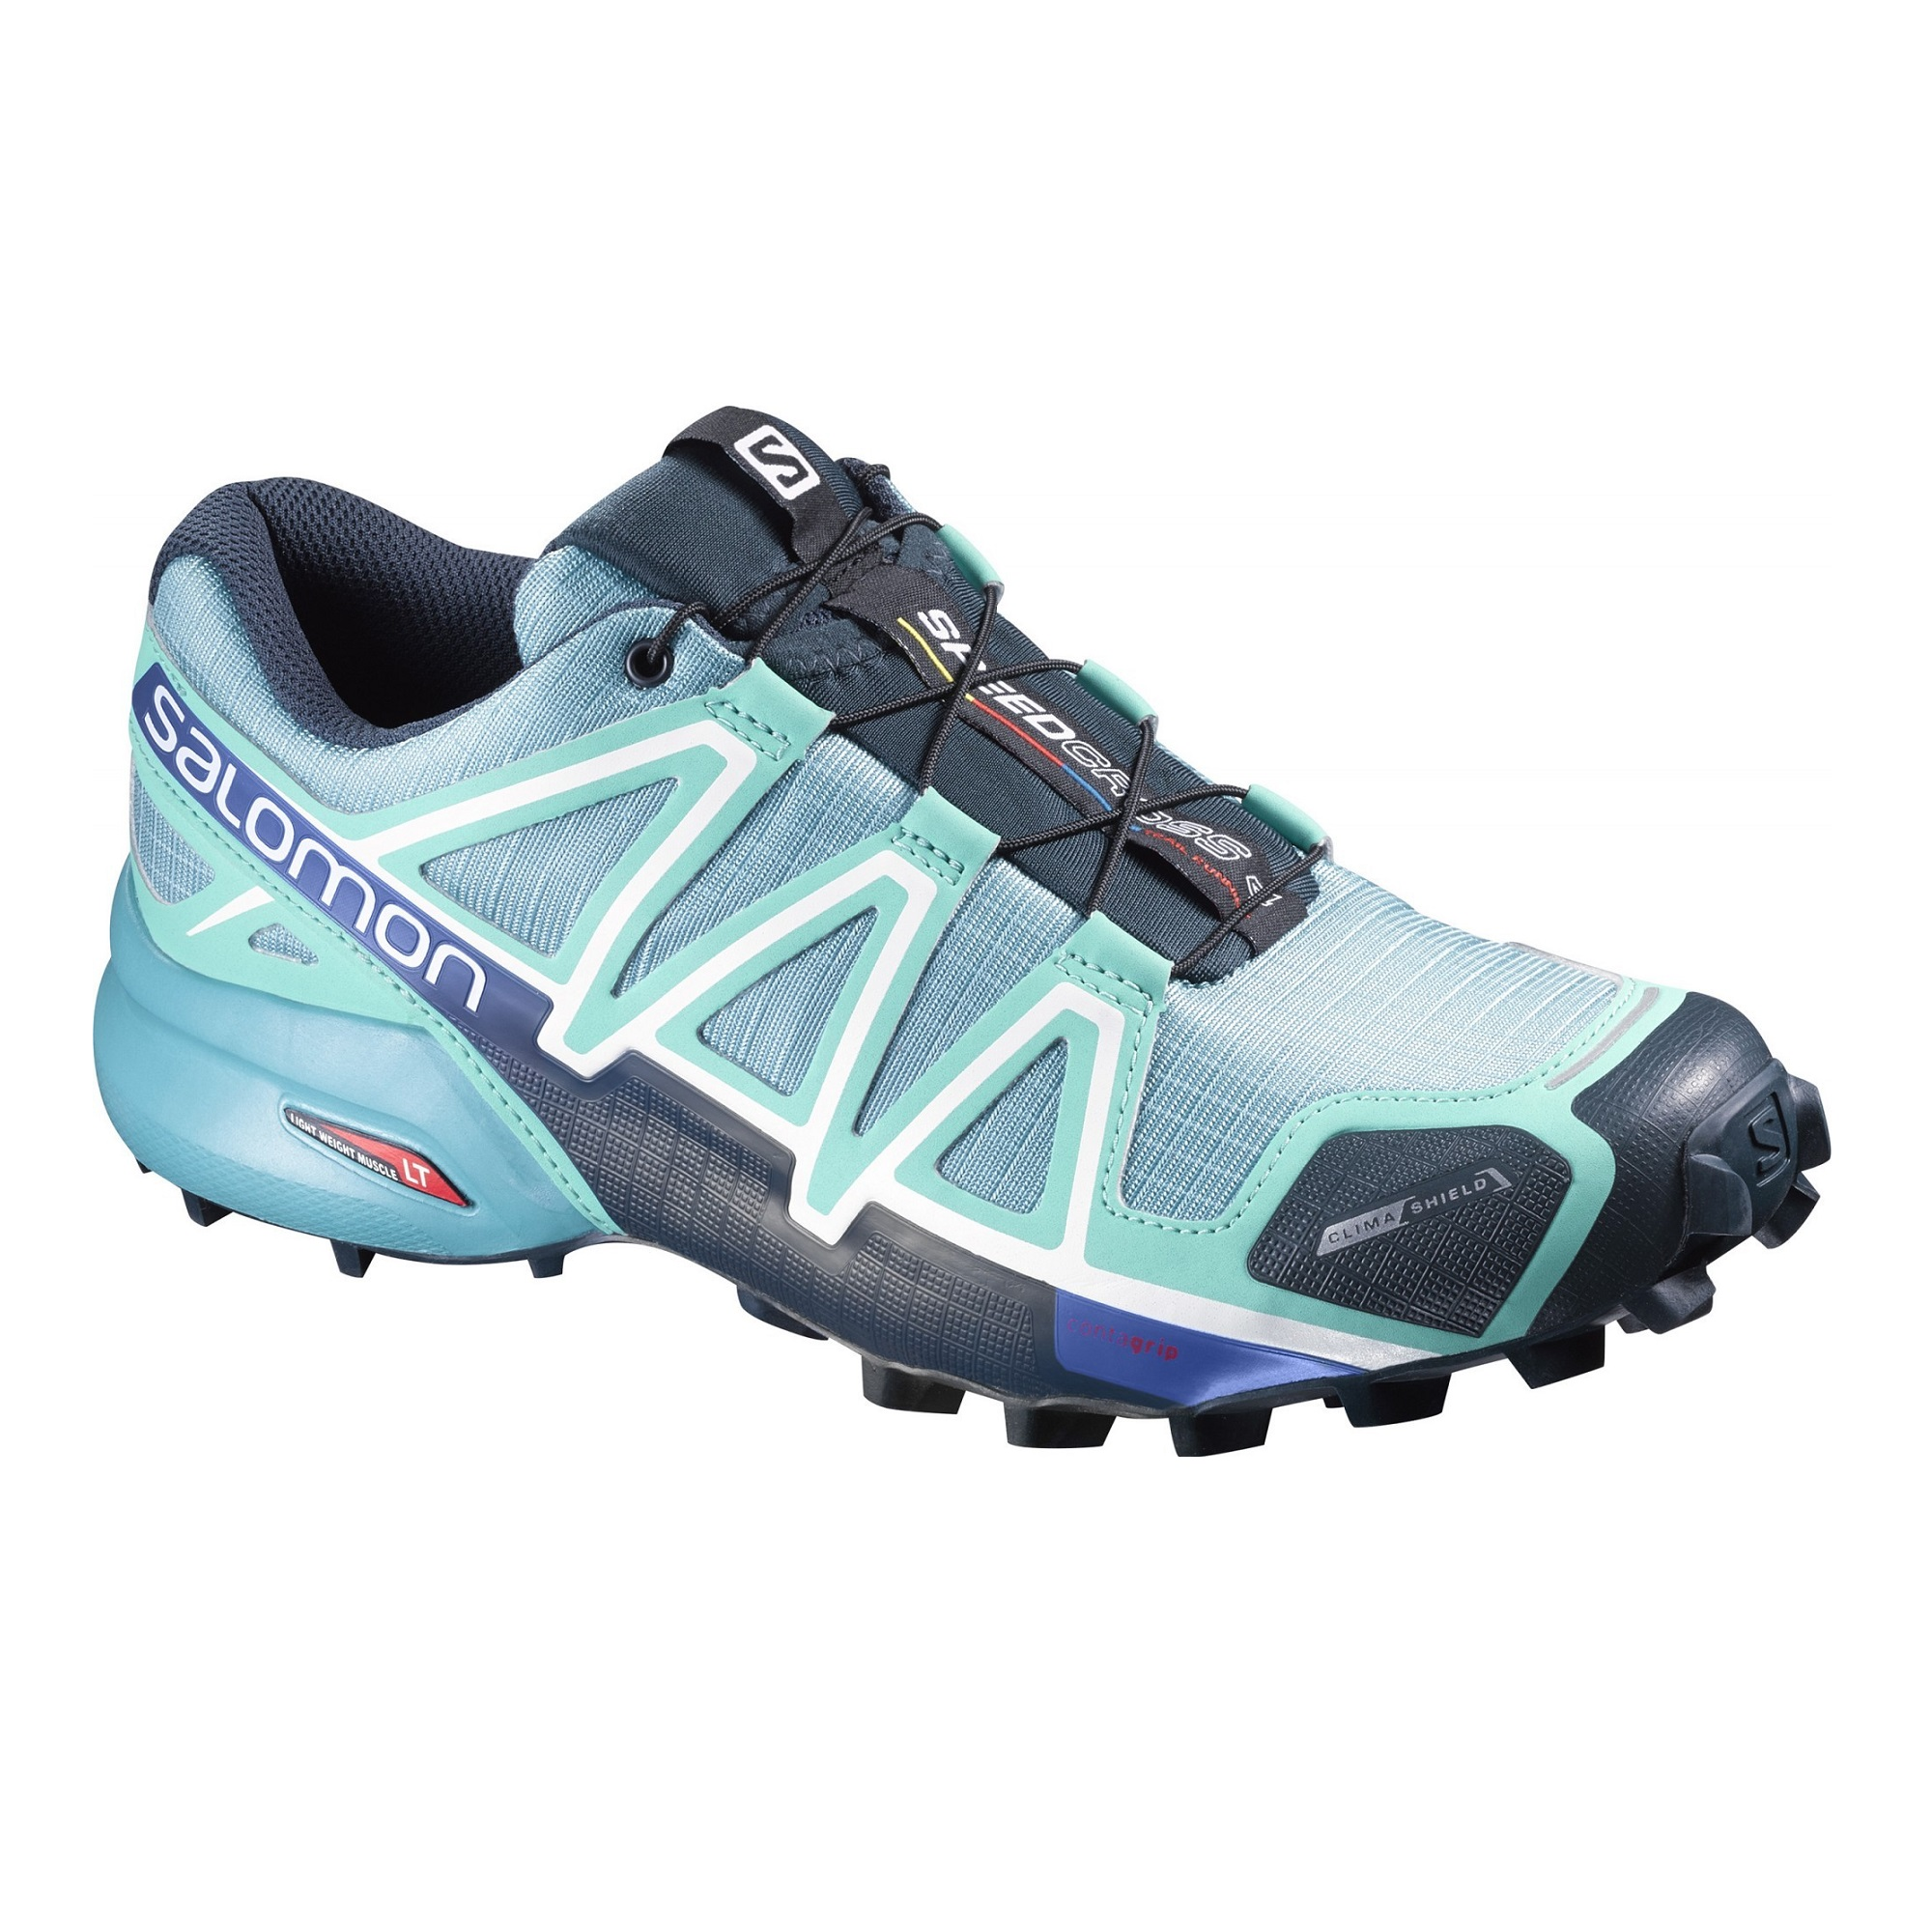 Salomon Speedcross 4 CS Women's